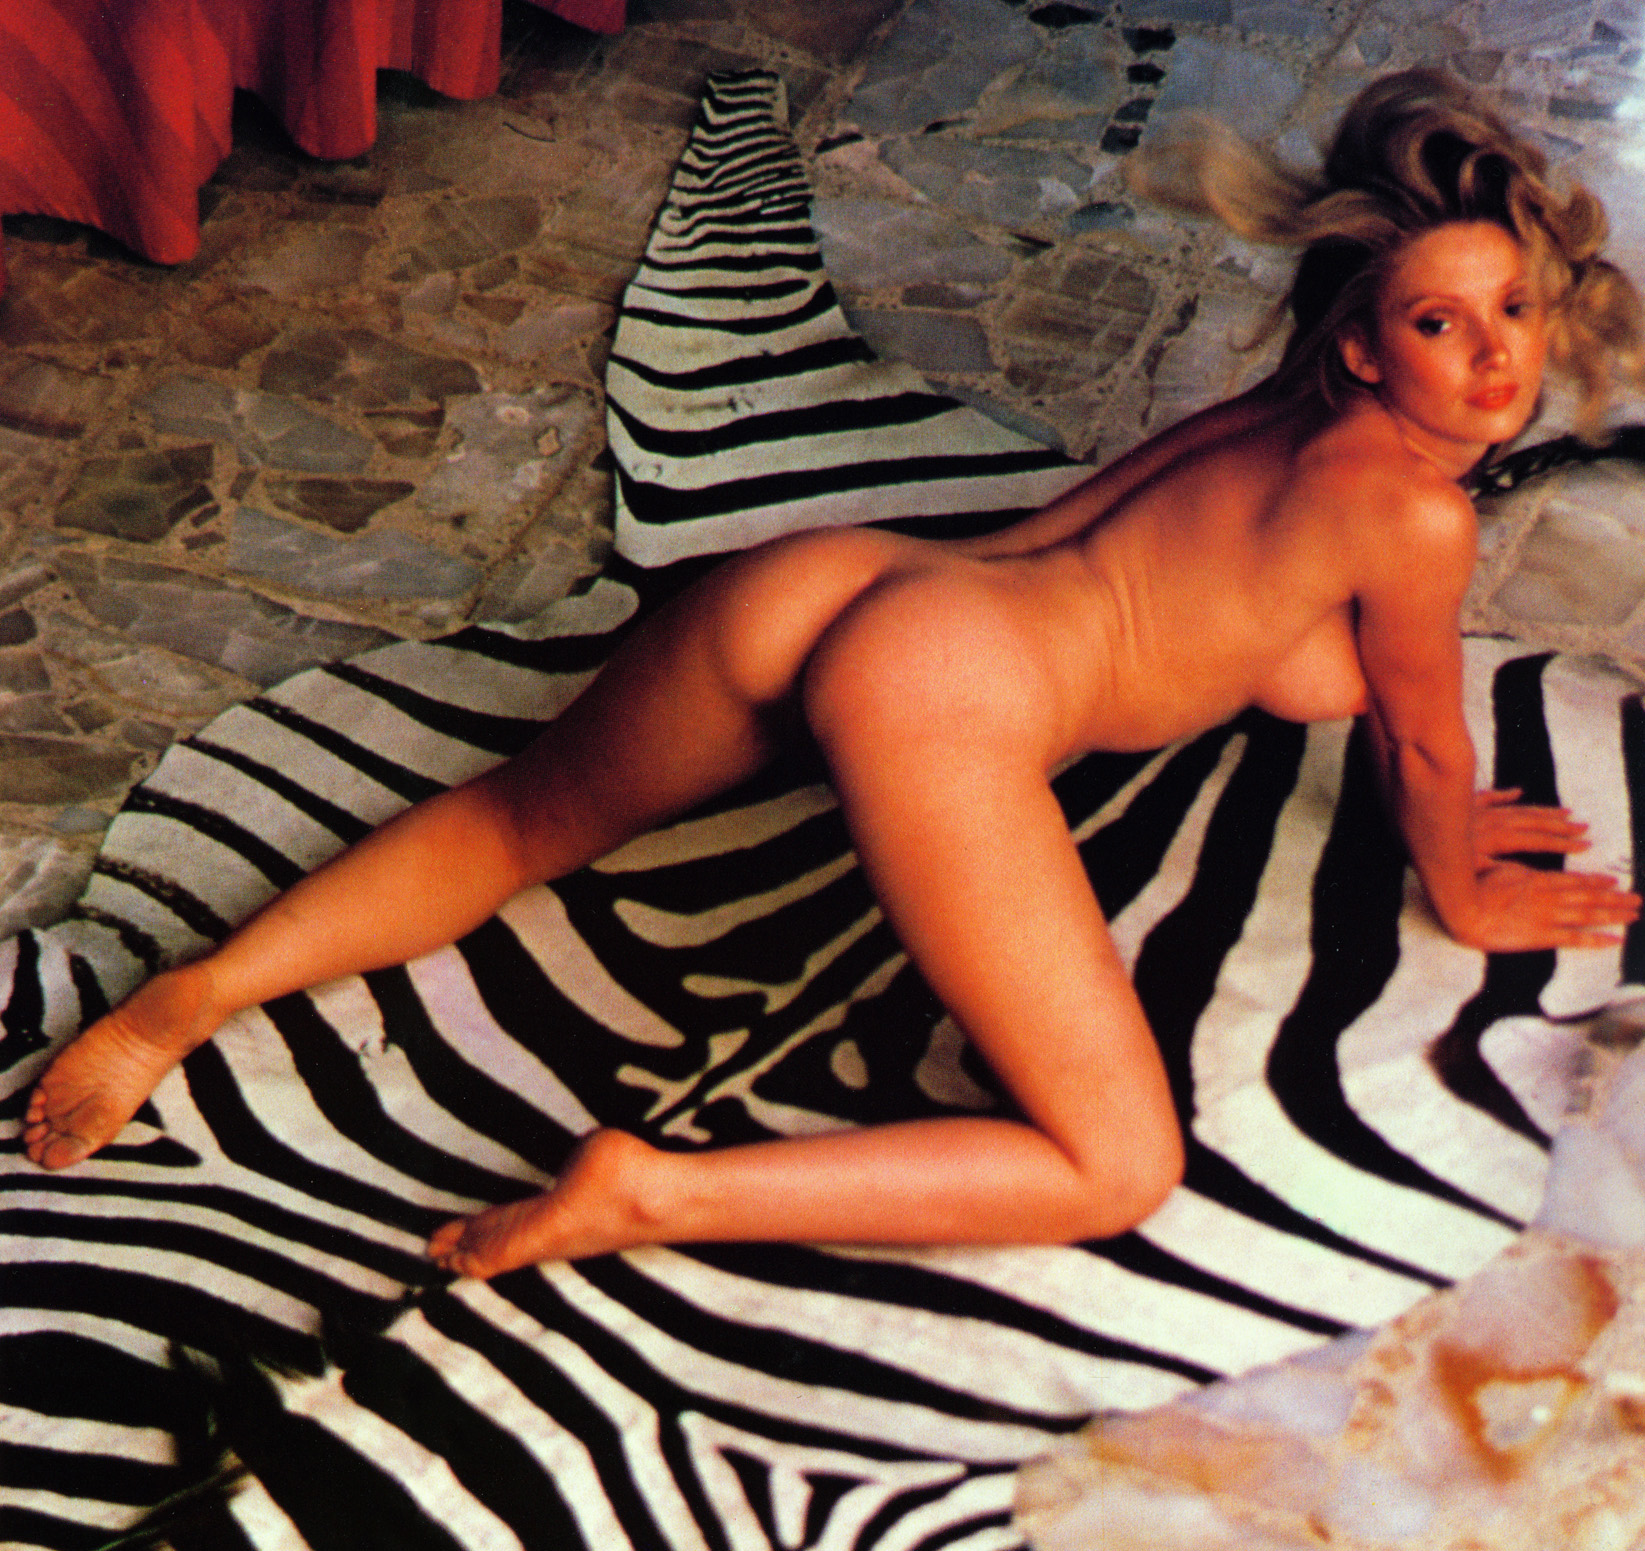 Cyndi Wood Playboy Playmate Of The Year 1974 09.jpg